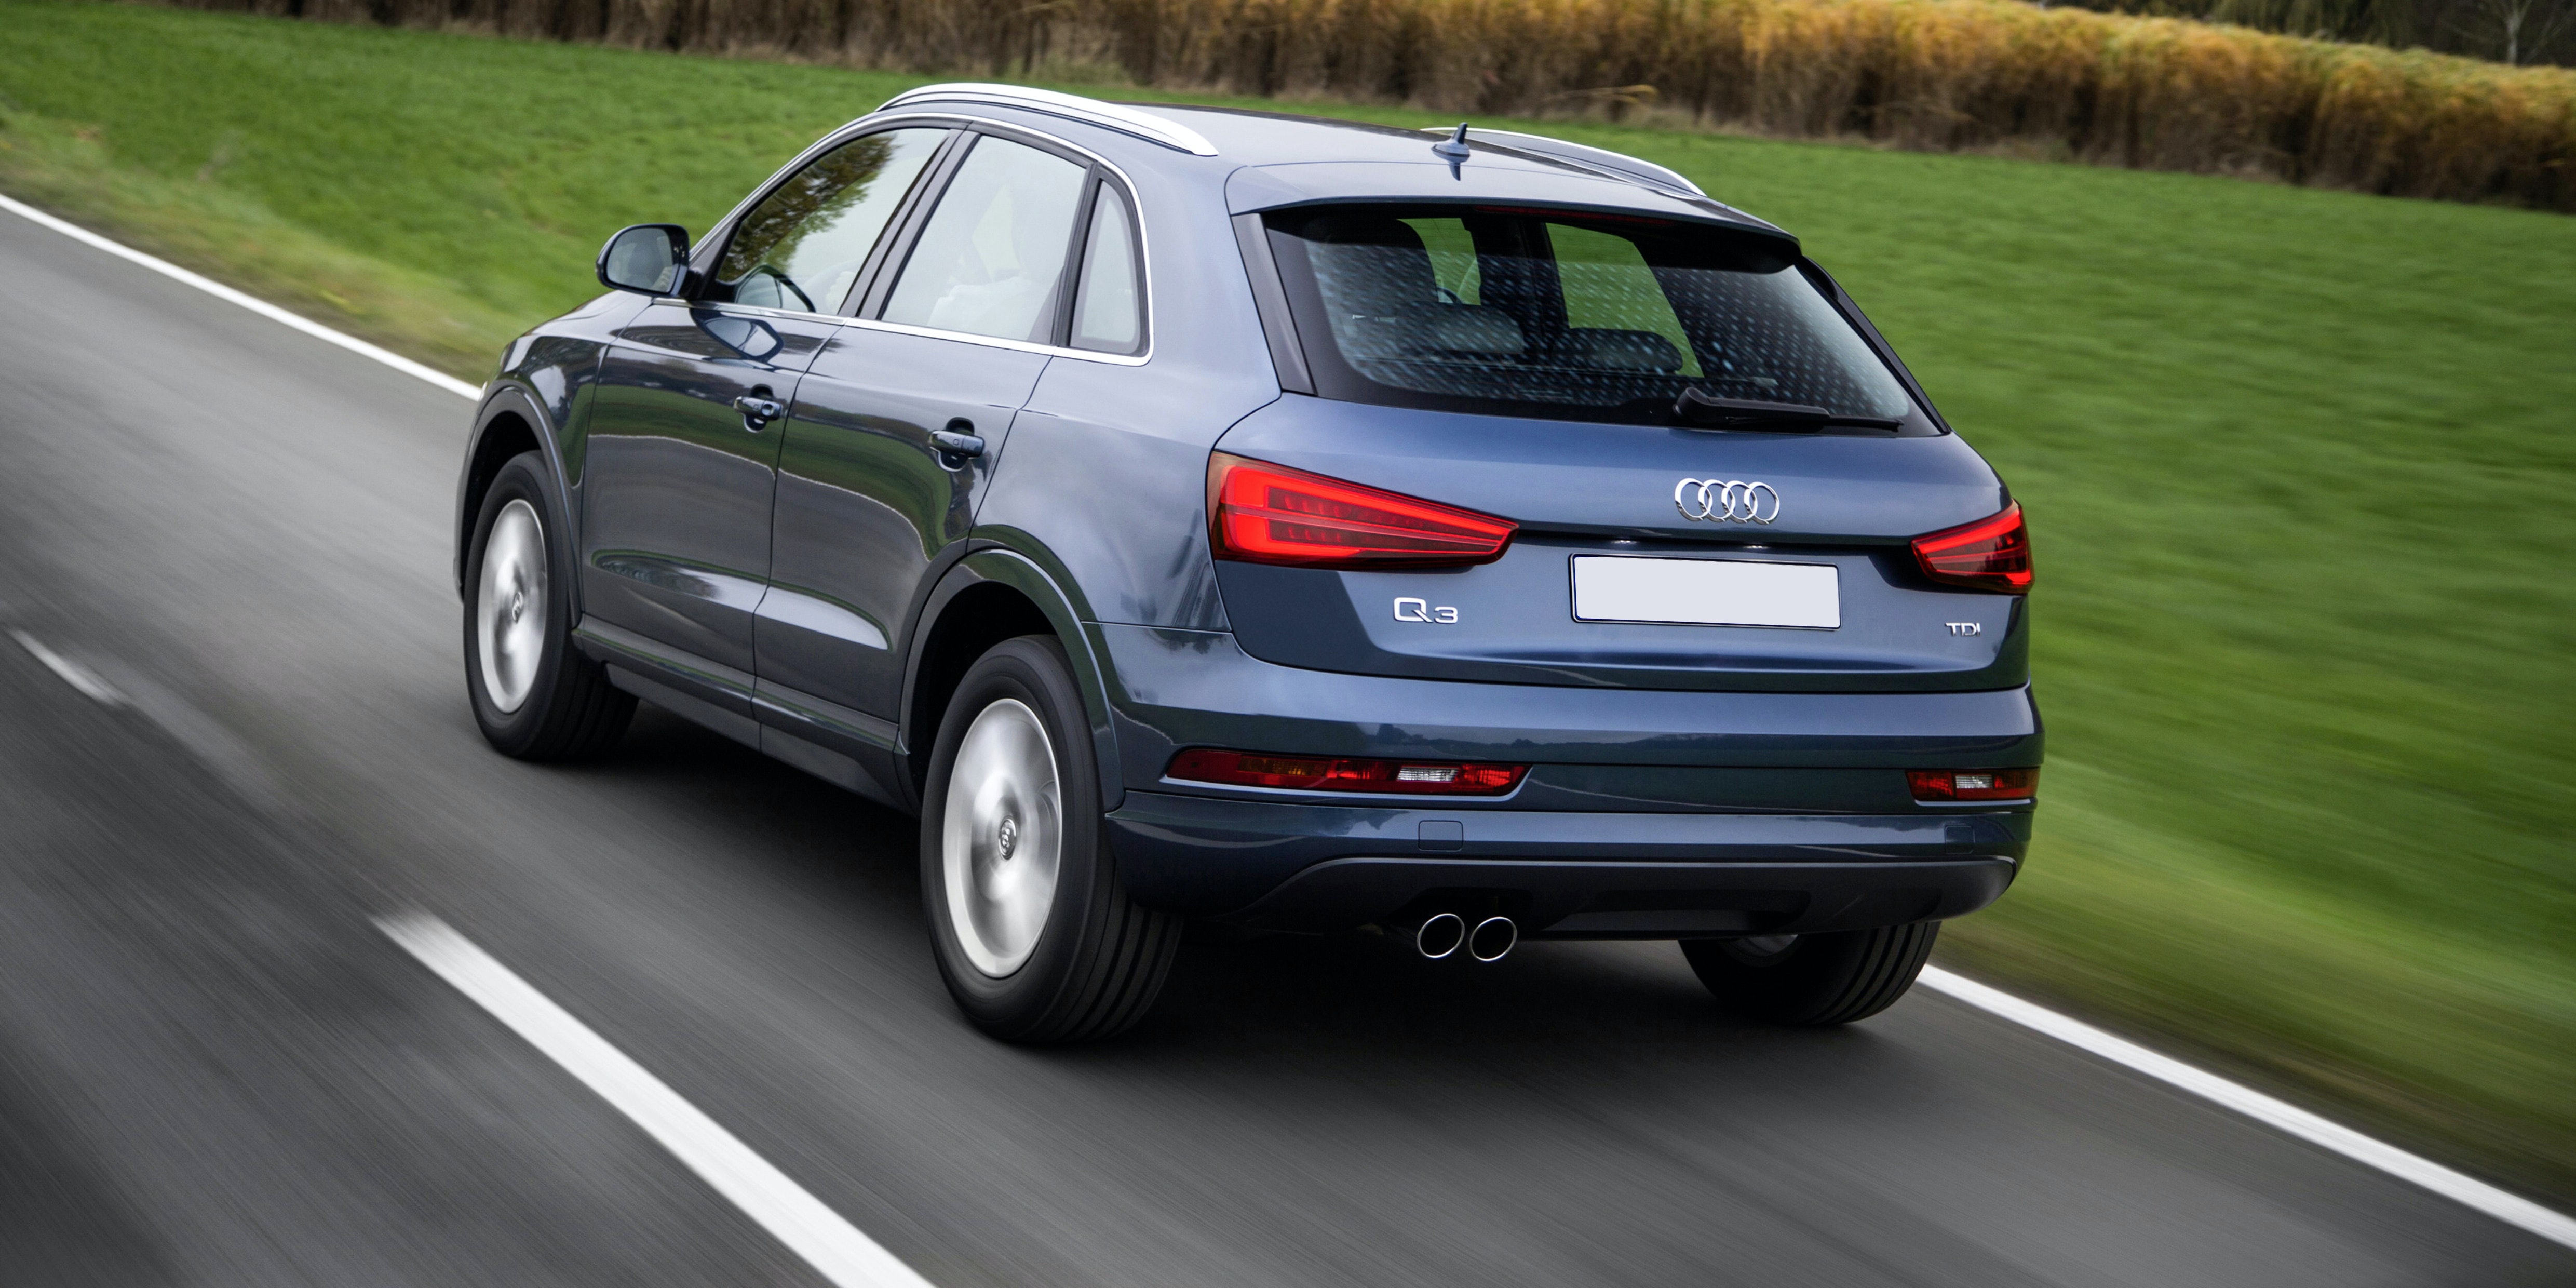 Audi Q3 Specifications | carwow